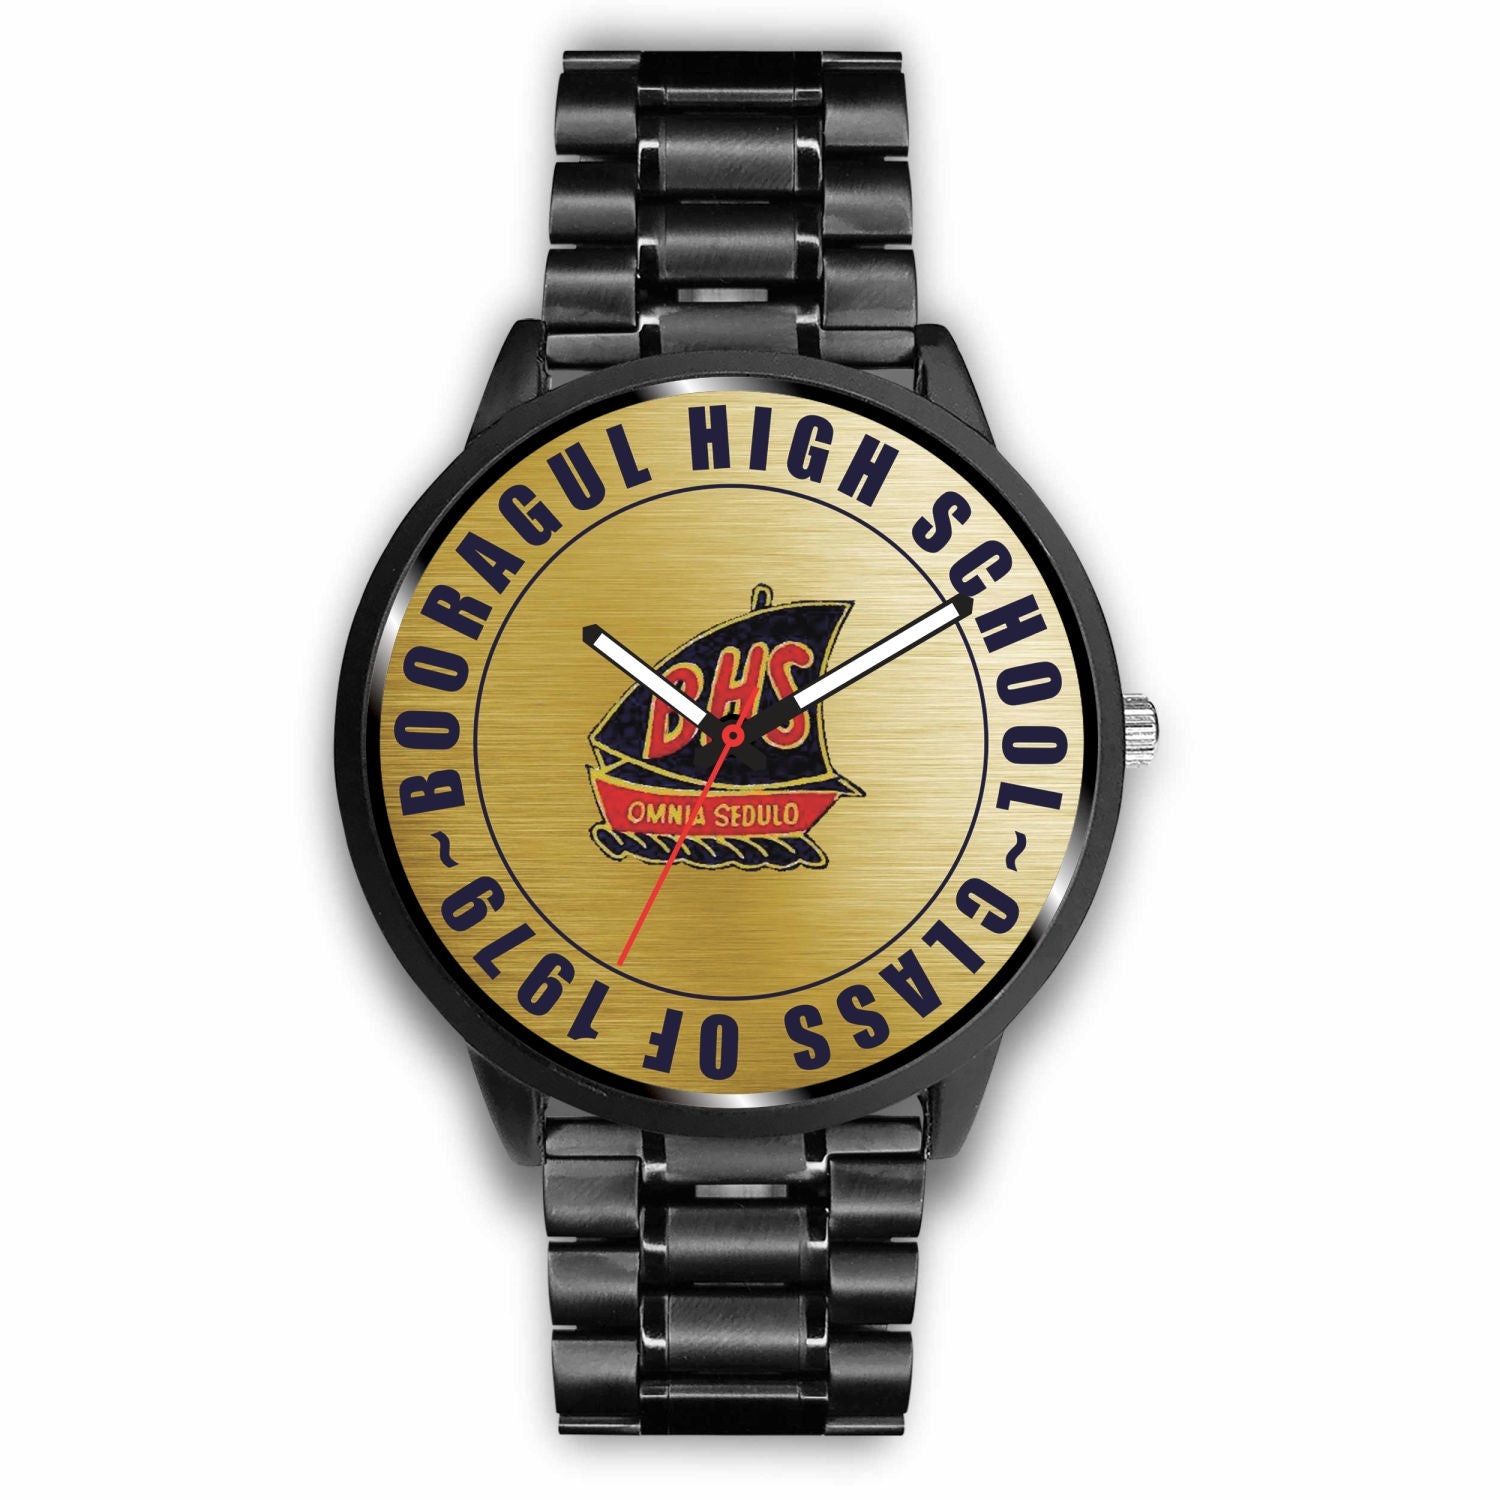 BHS Class of 1979 memorial watch